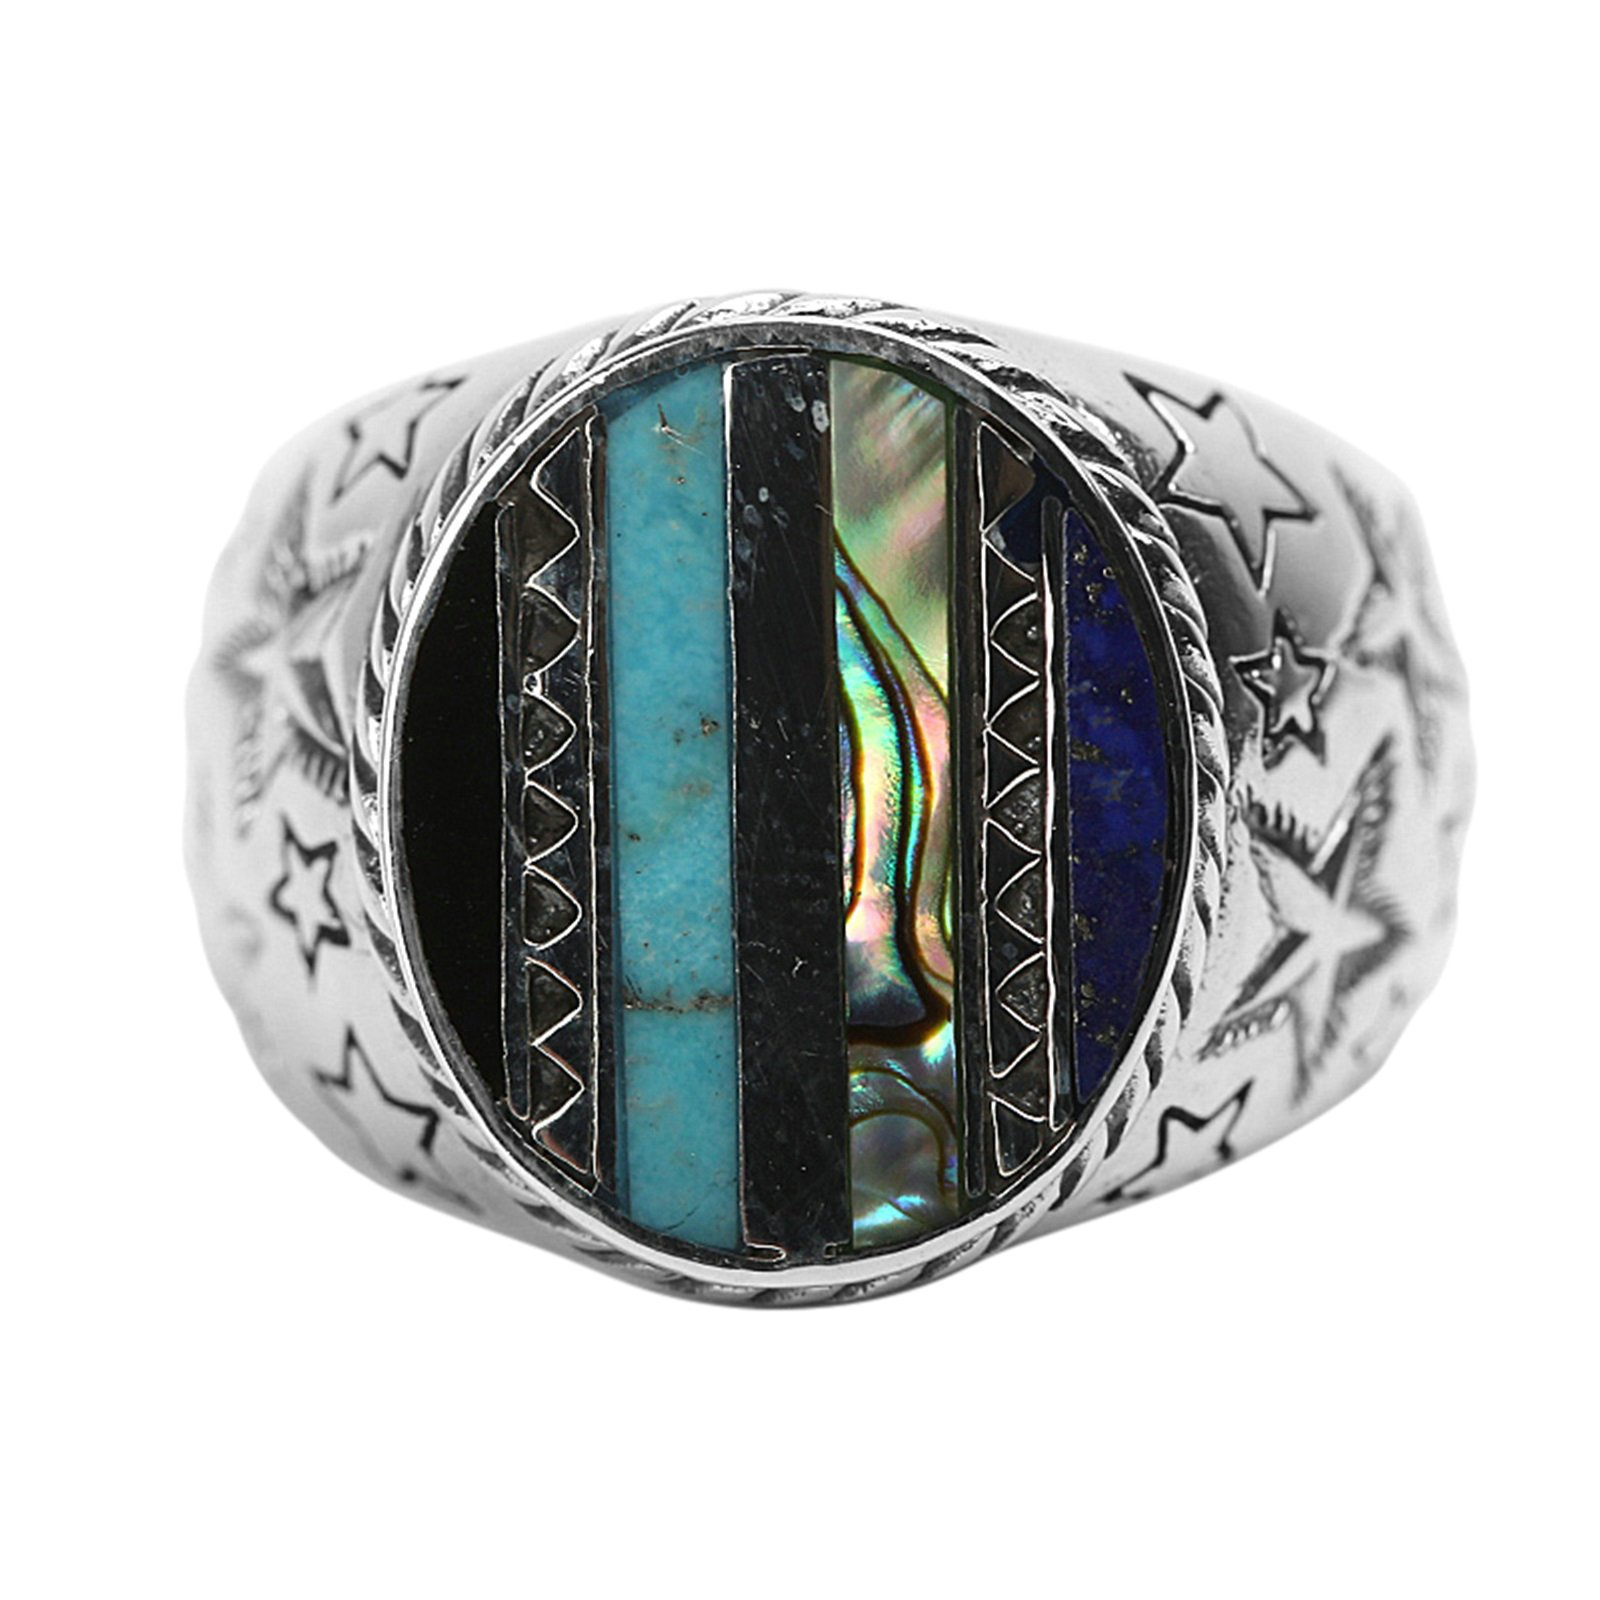 Adisaer Biker Rings Silver Ring for Men Star Ring Inlaid Multiple Stone Size 7.5 Vintage Punk Jewelry